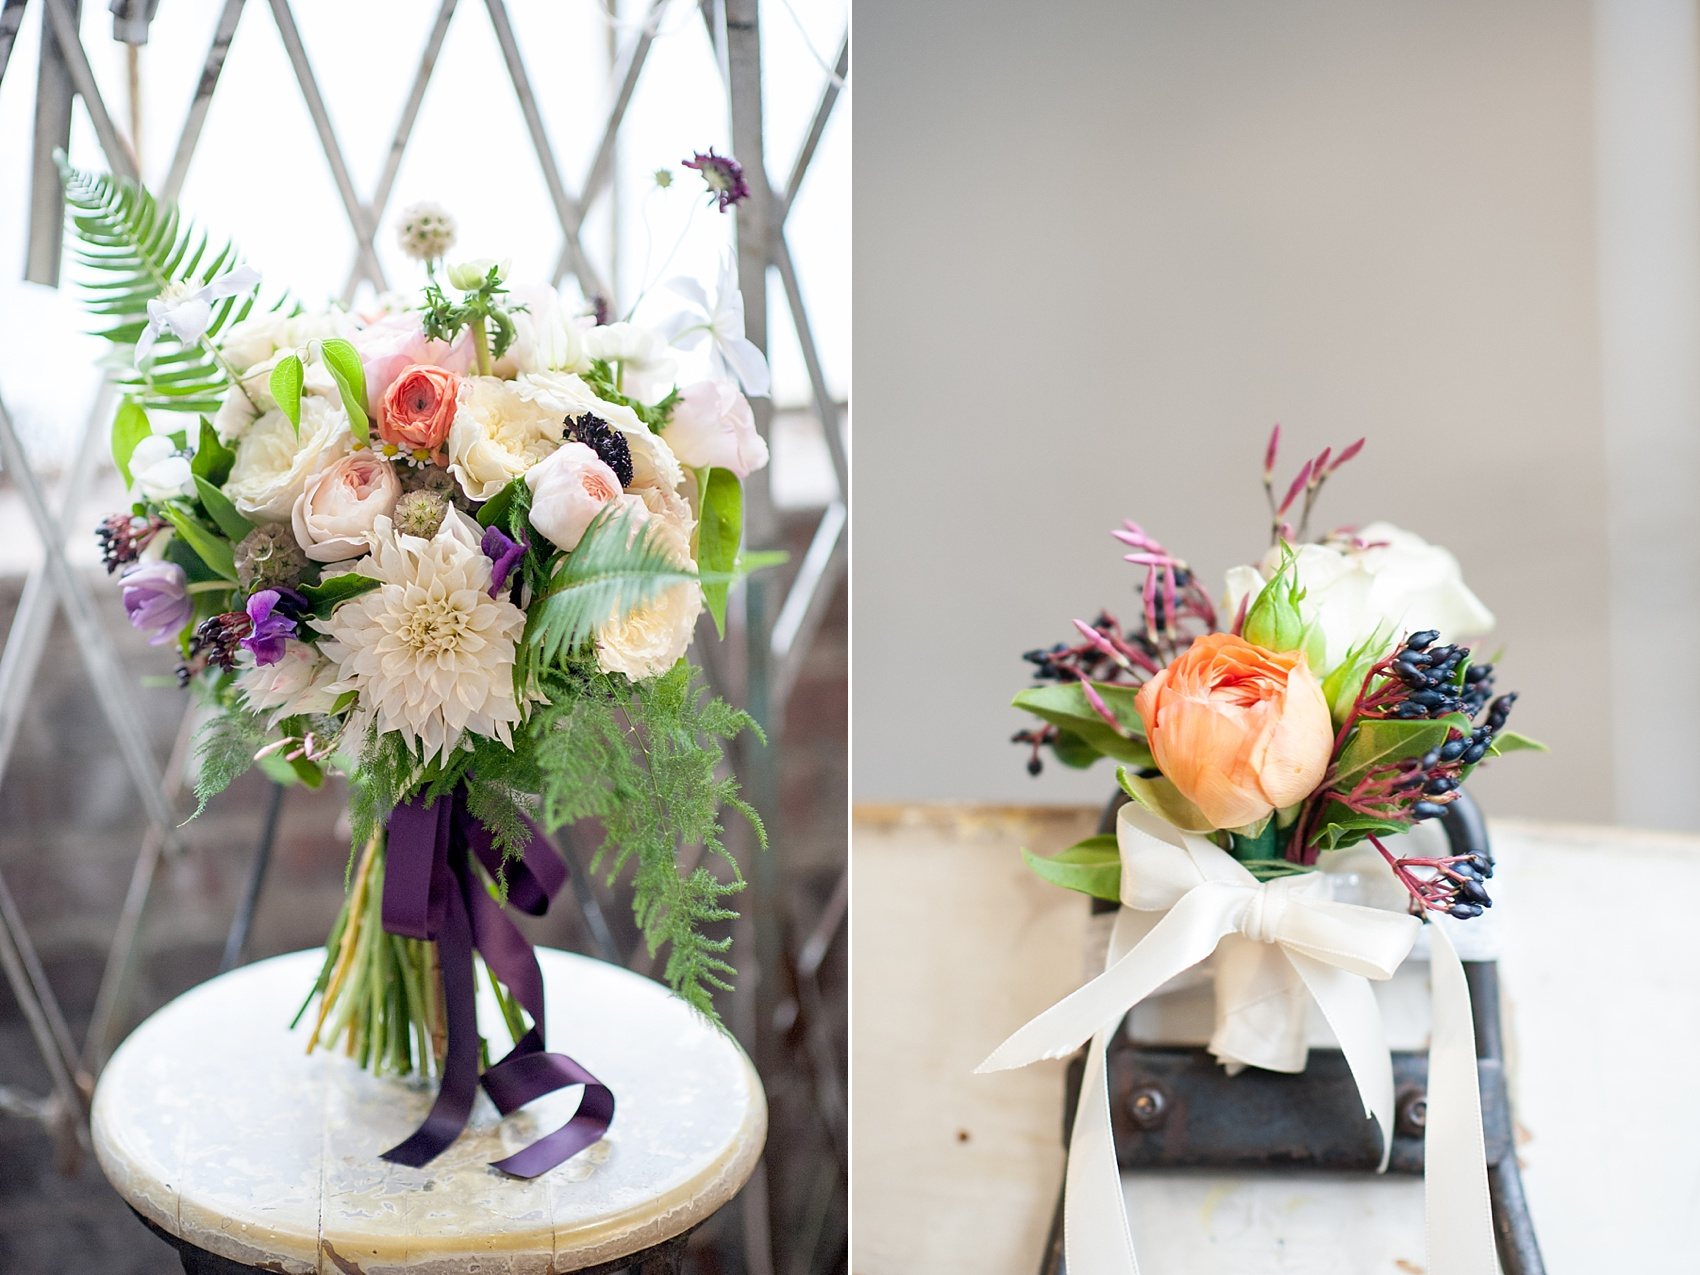 Bright summery wildflower bouquet and corsage by Sachi Rose Design florist. Photos by Mikkel Paige Photography.